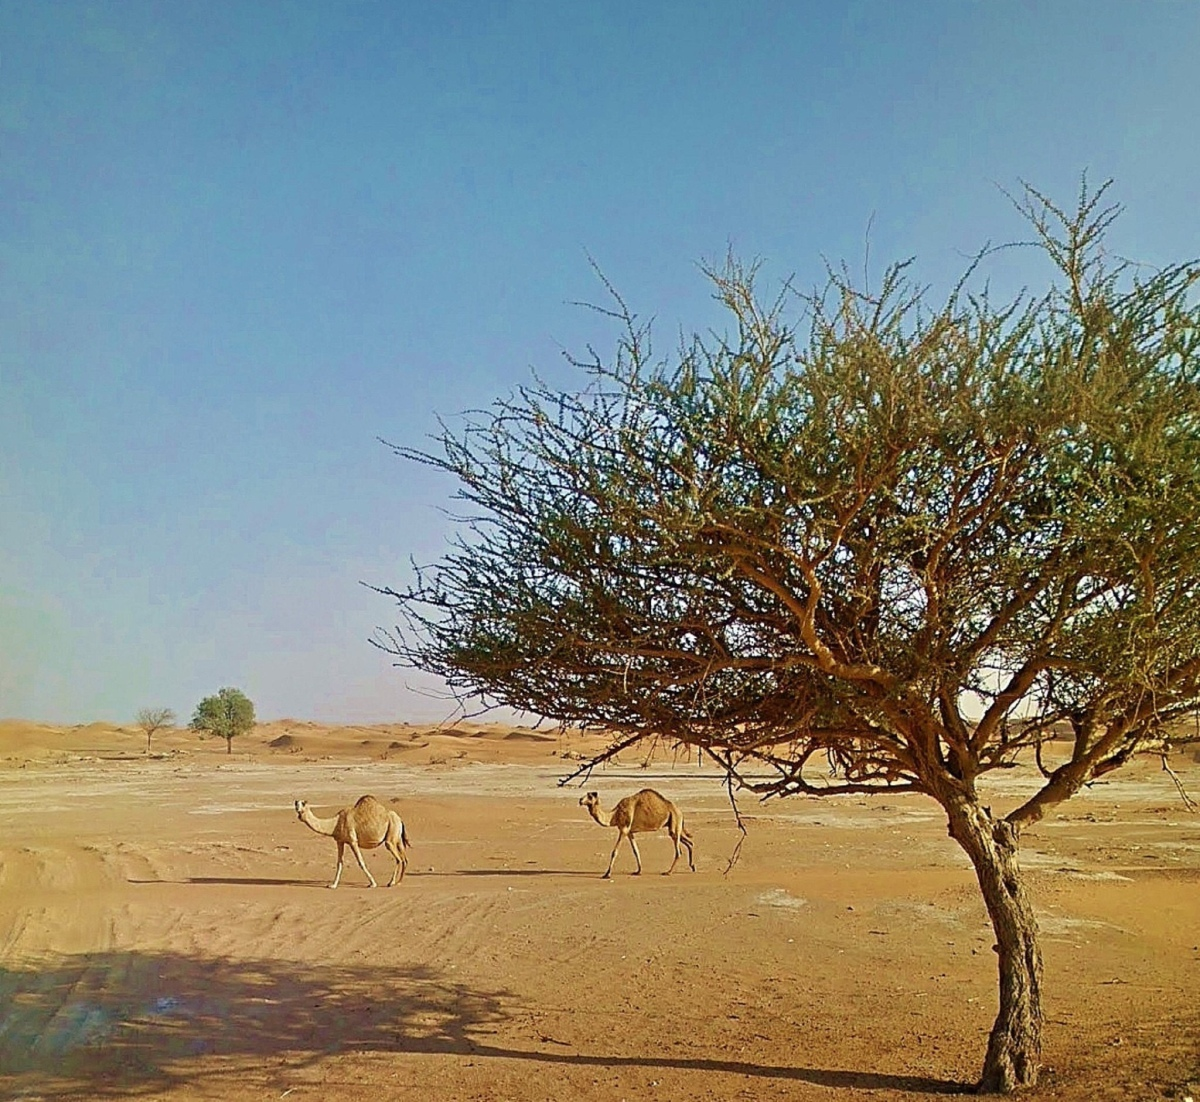 Camel, Desert and the Umbrella Tree